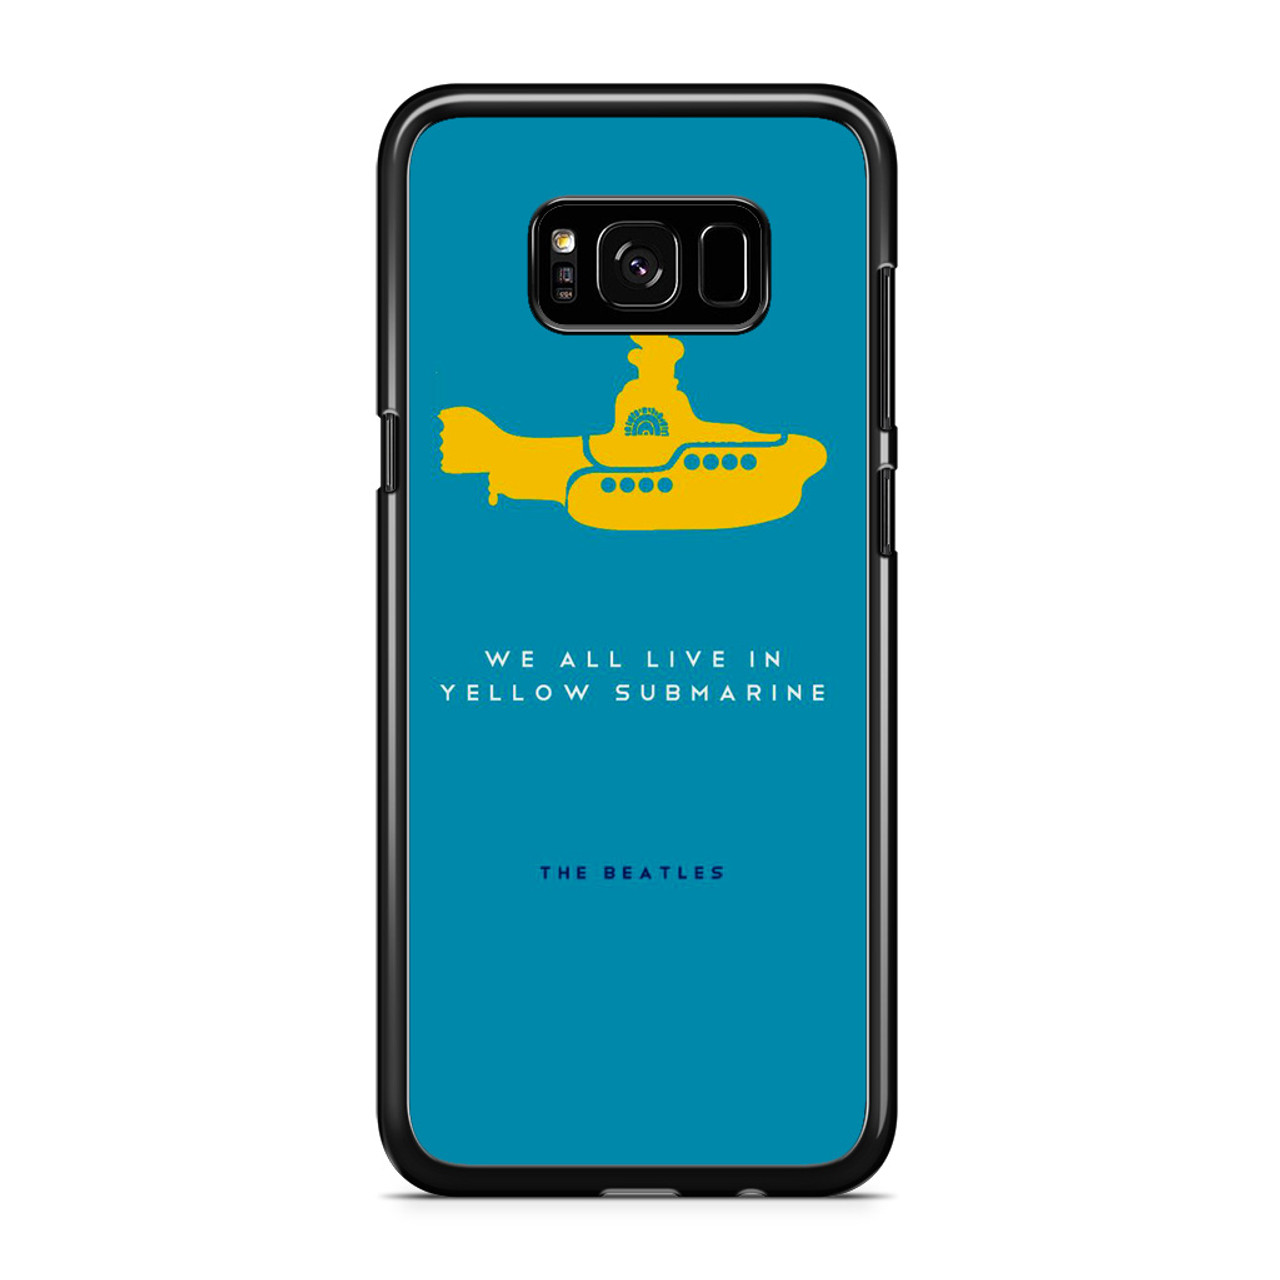 reputable site c5956 abcf8 The Beatles Yellow Submarine Samsung Galaxy S8 Case